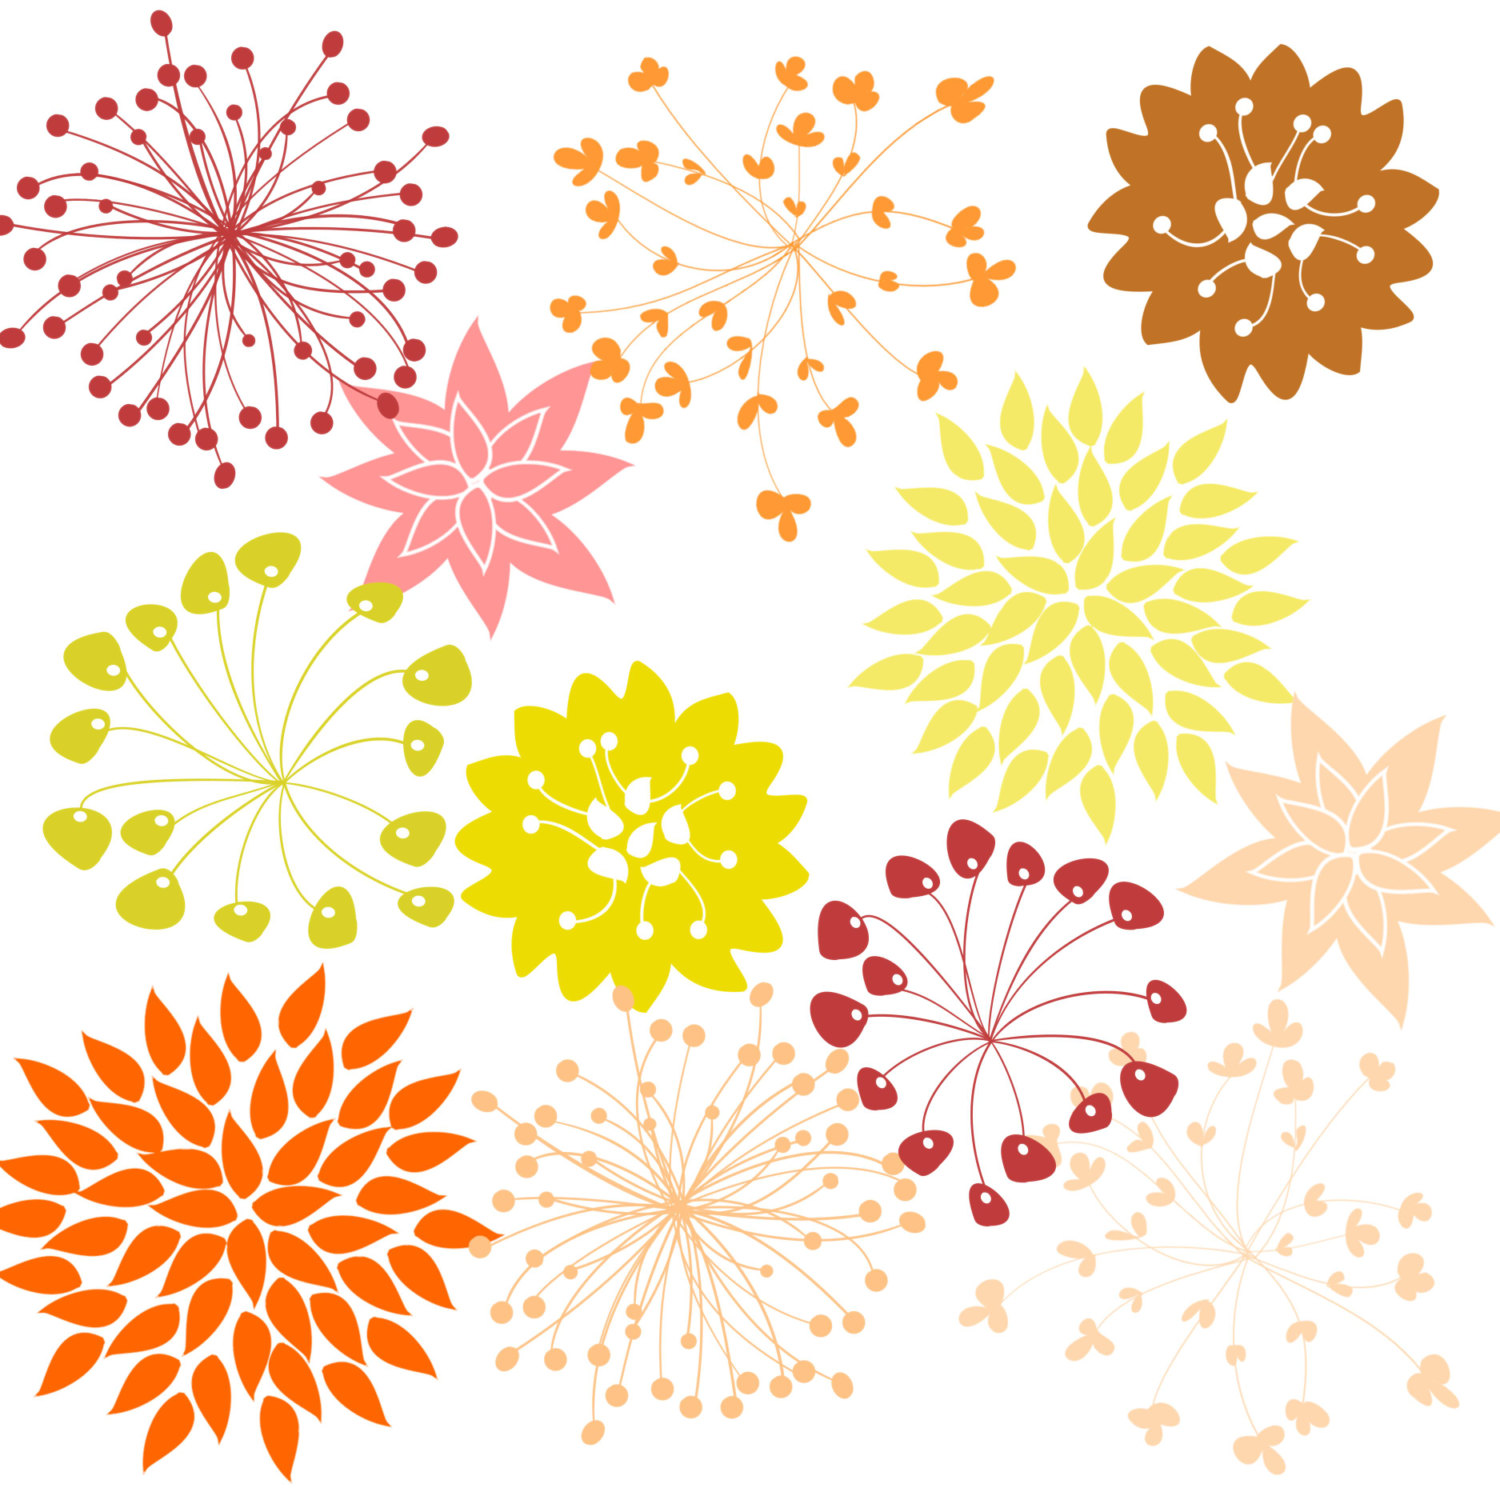 Starburst Digital Download Discoveries For Diy Birthday Cards From